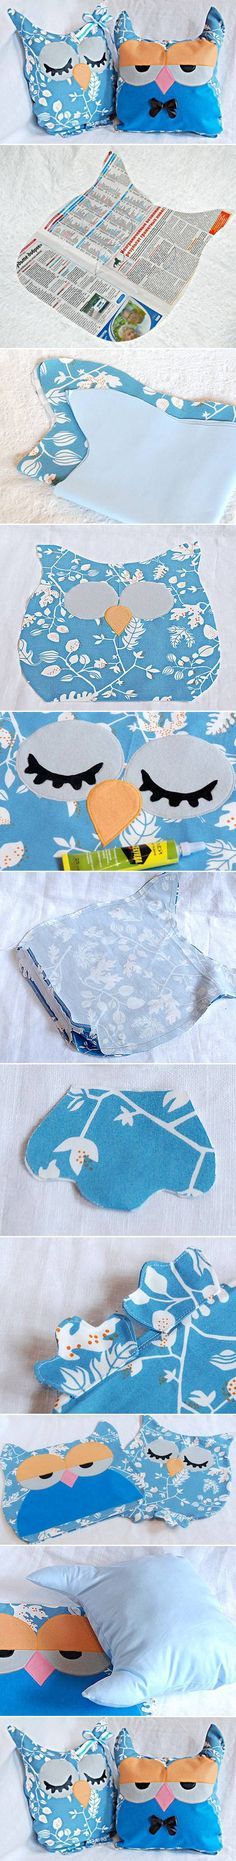 DIY Owl Cushion DIY Projects | UsefulDIY.com Follow Us on Facebook ==> http://www.facebook.com/UsefulDiy